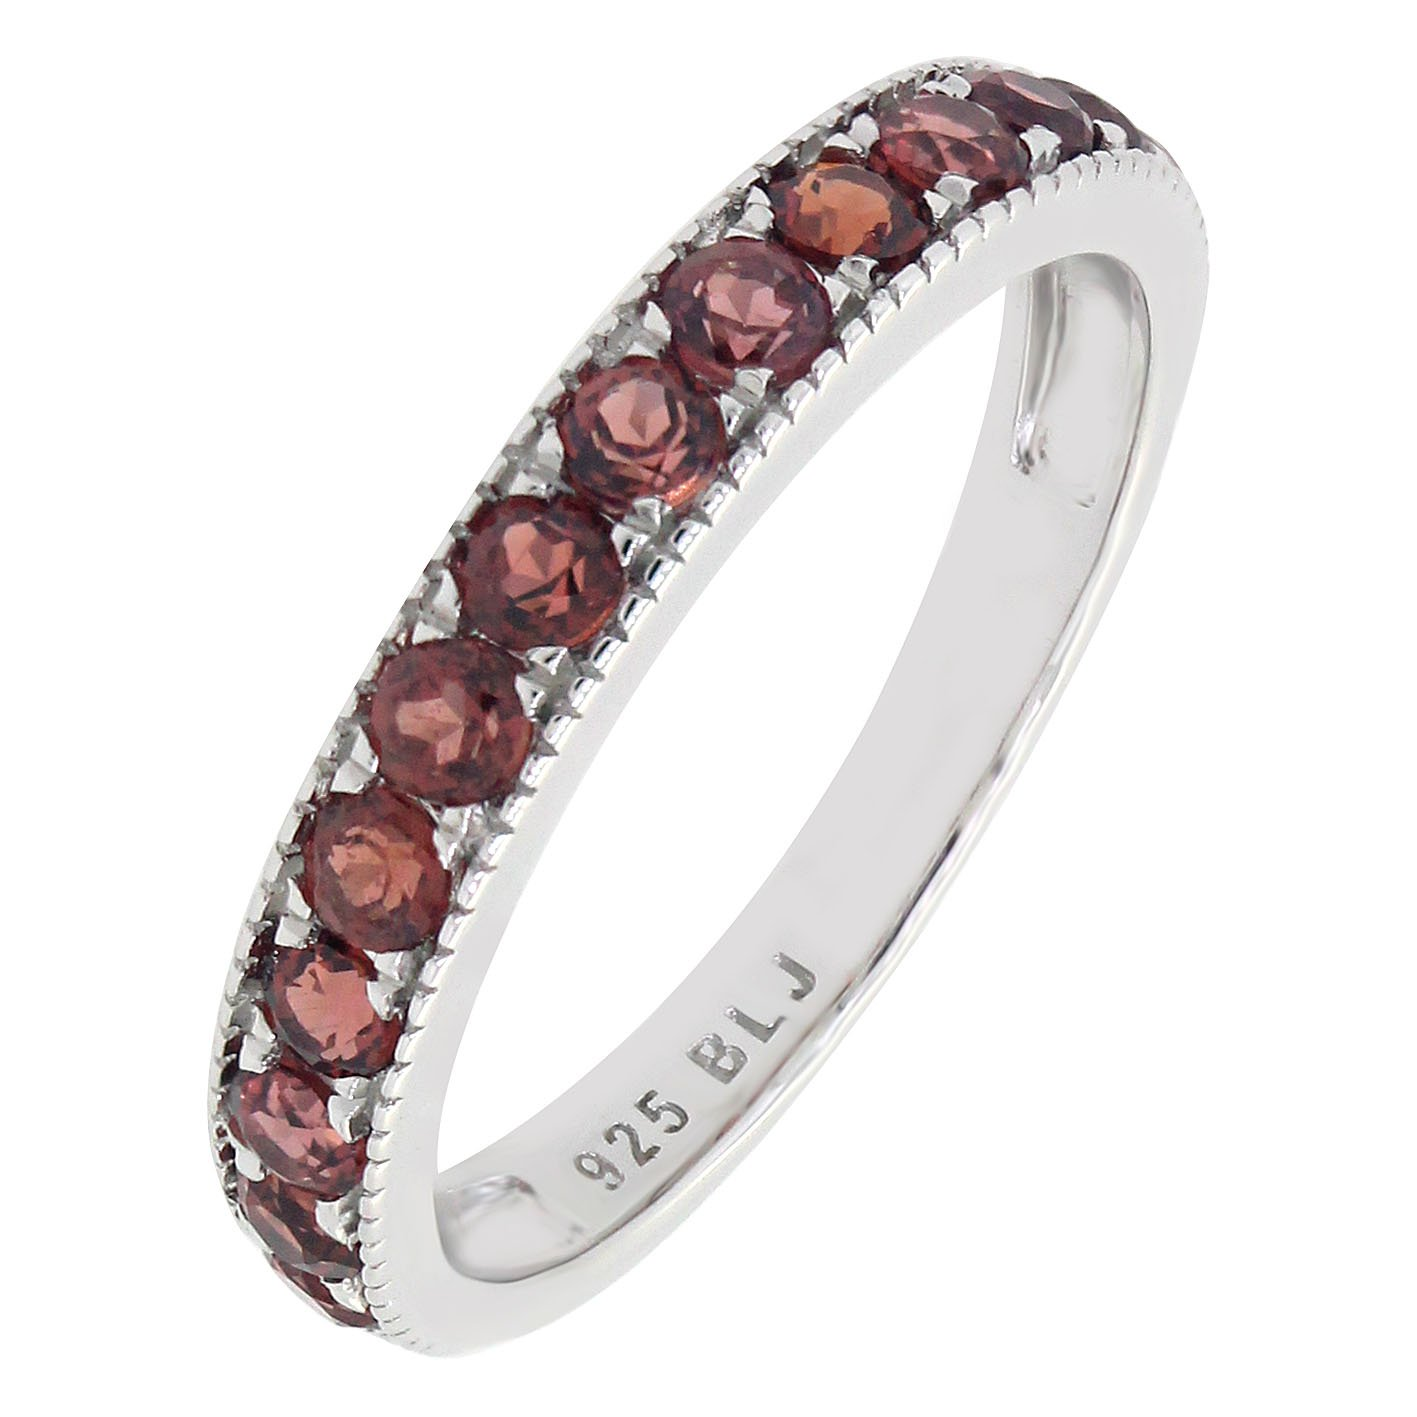 BL Jewelry Sterling Silver Round Cut Genuine Garnet Stackable Eternity Band Ring (1.26 CT.T.W)